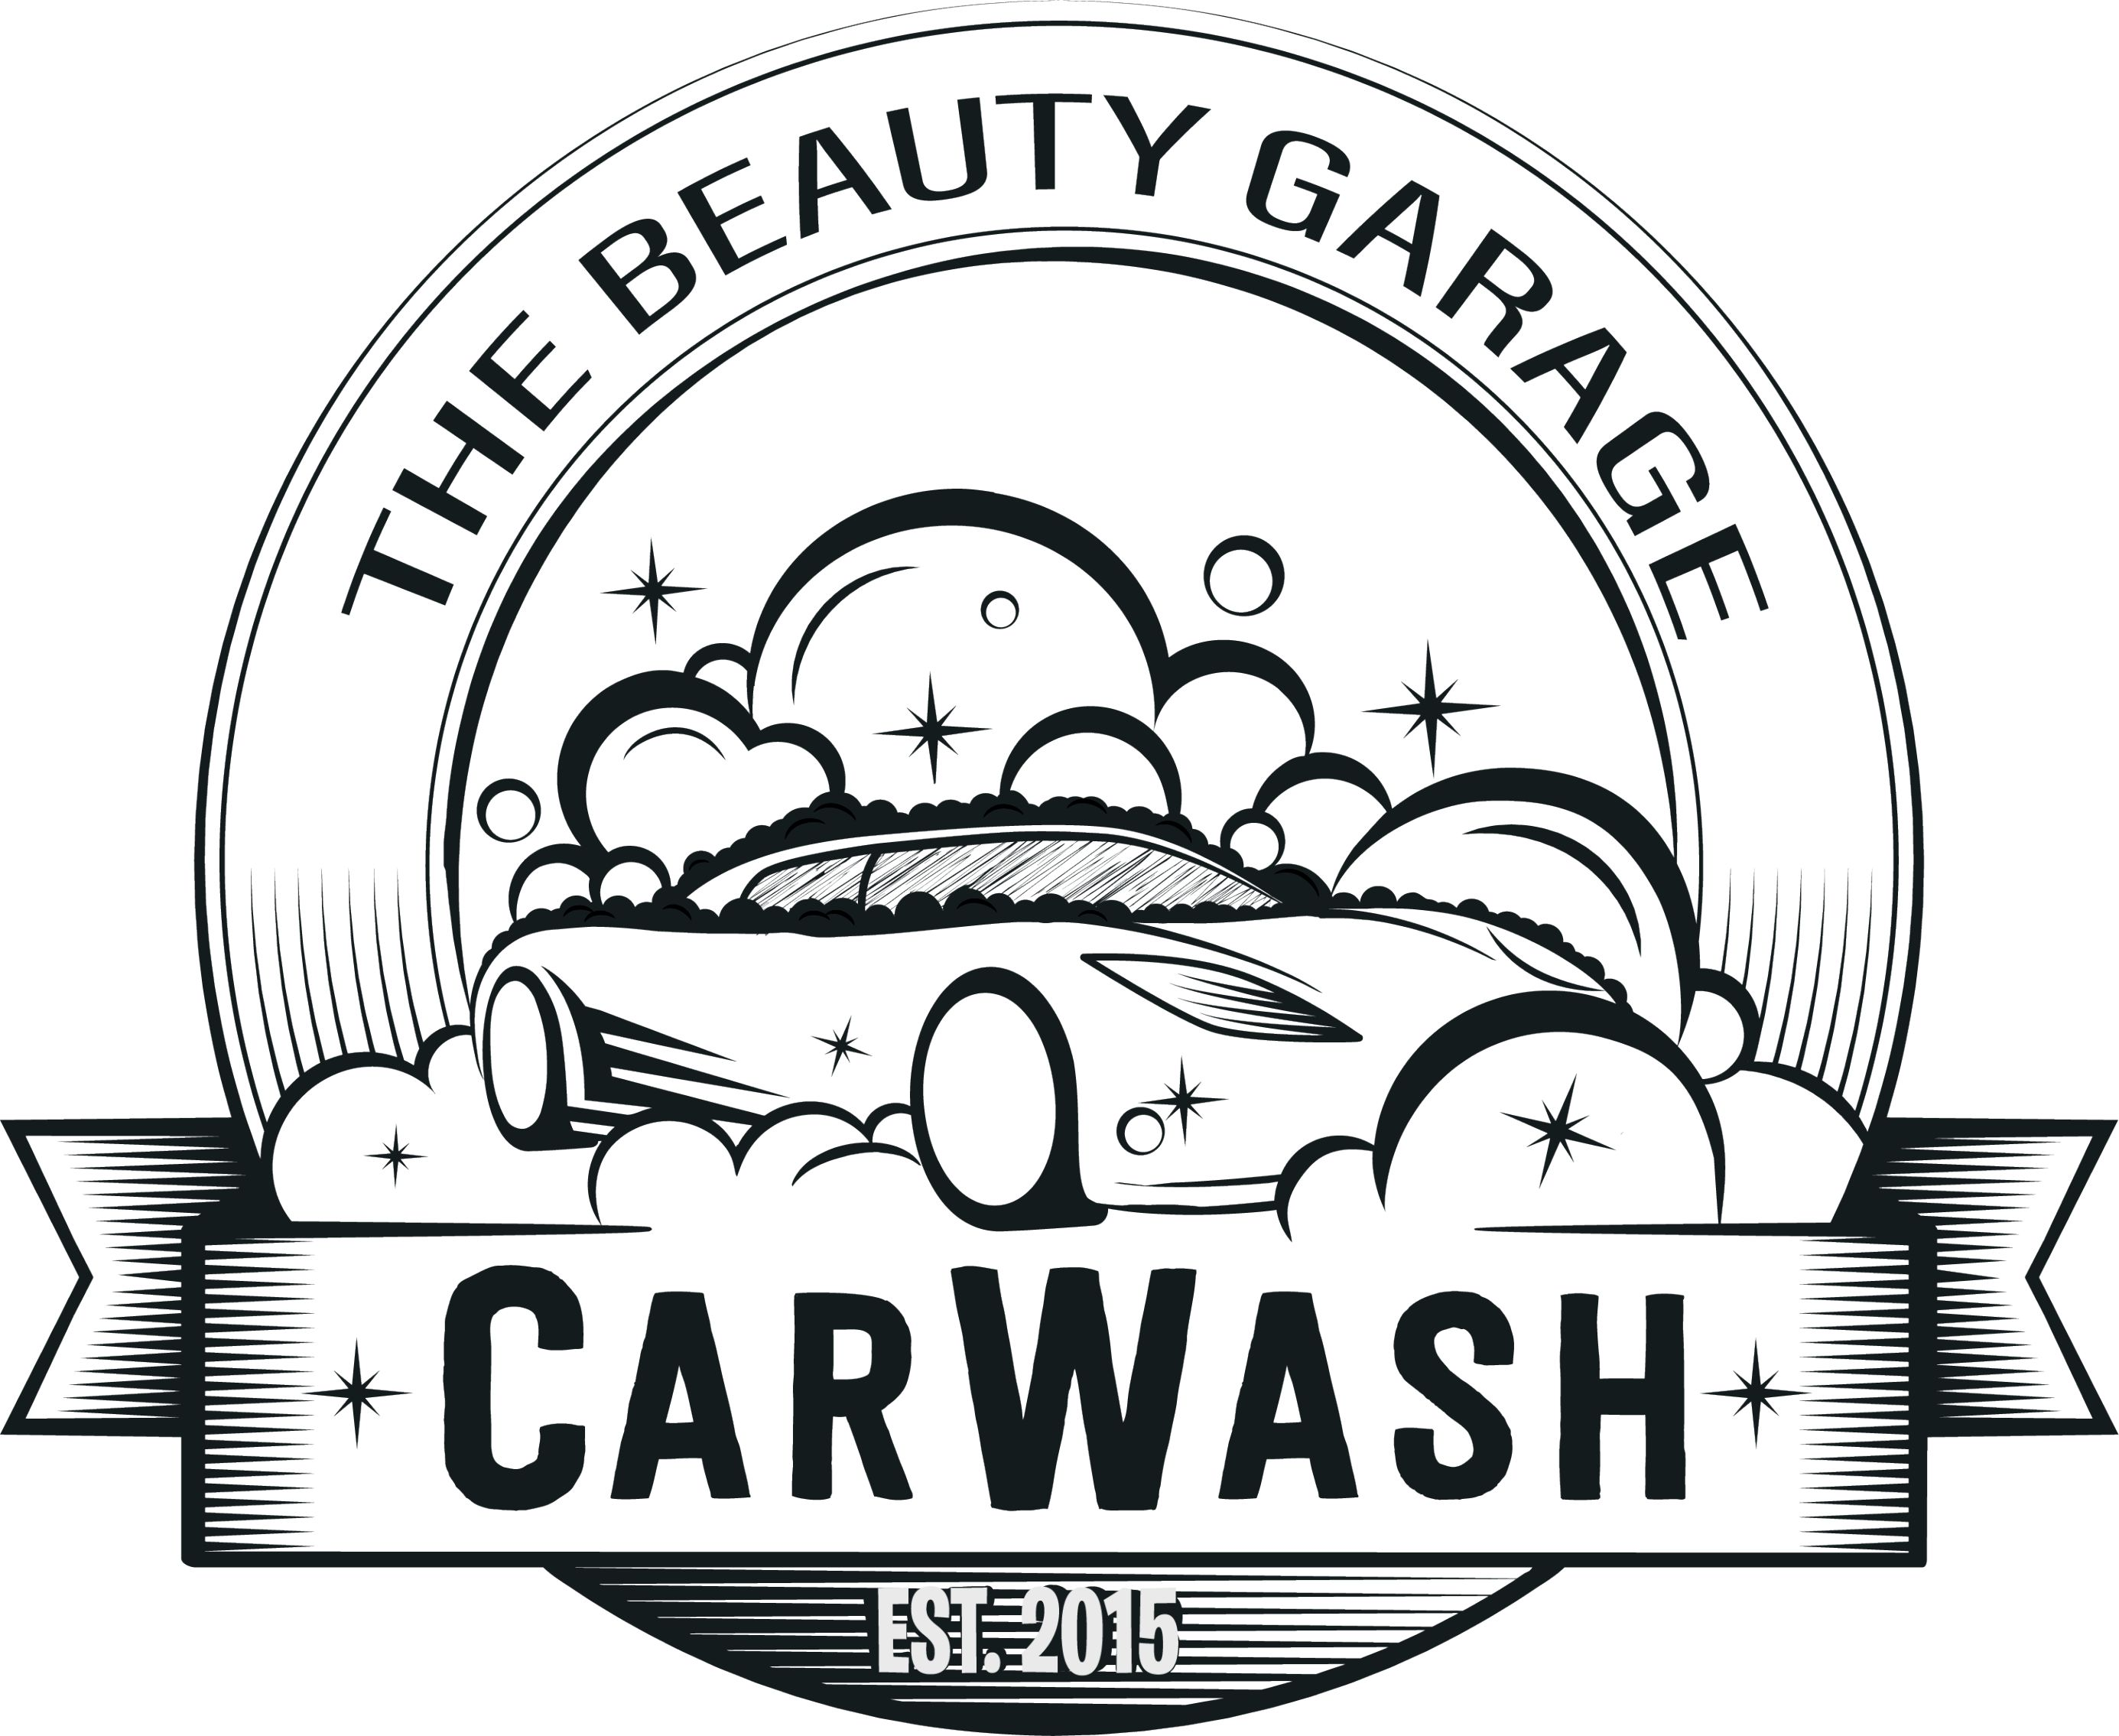 The Beauty Garage